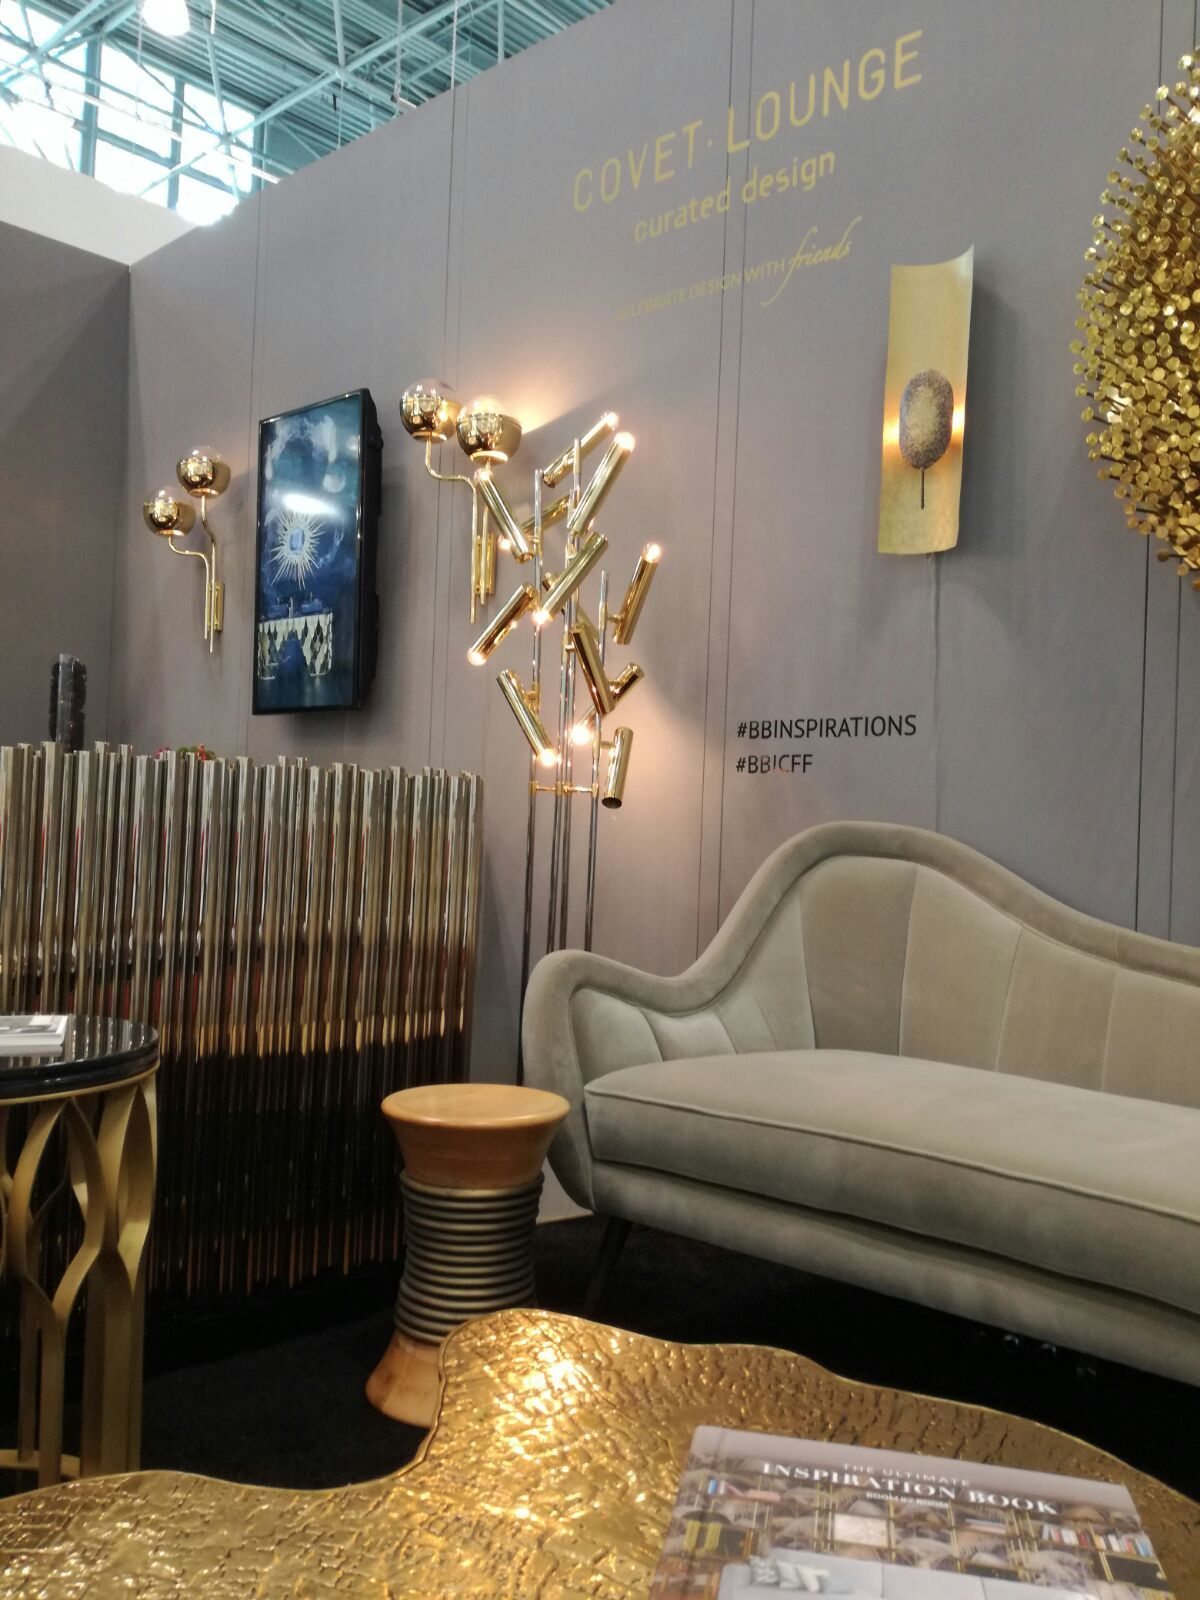 Amazing Covet House  Modern Luxury Furniture And Interior Design Exhibited At ICFF New  York City 2017